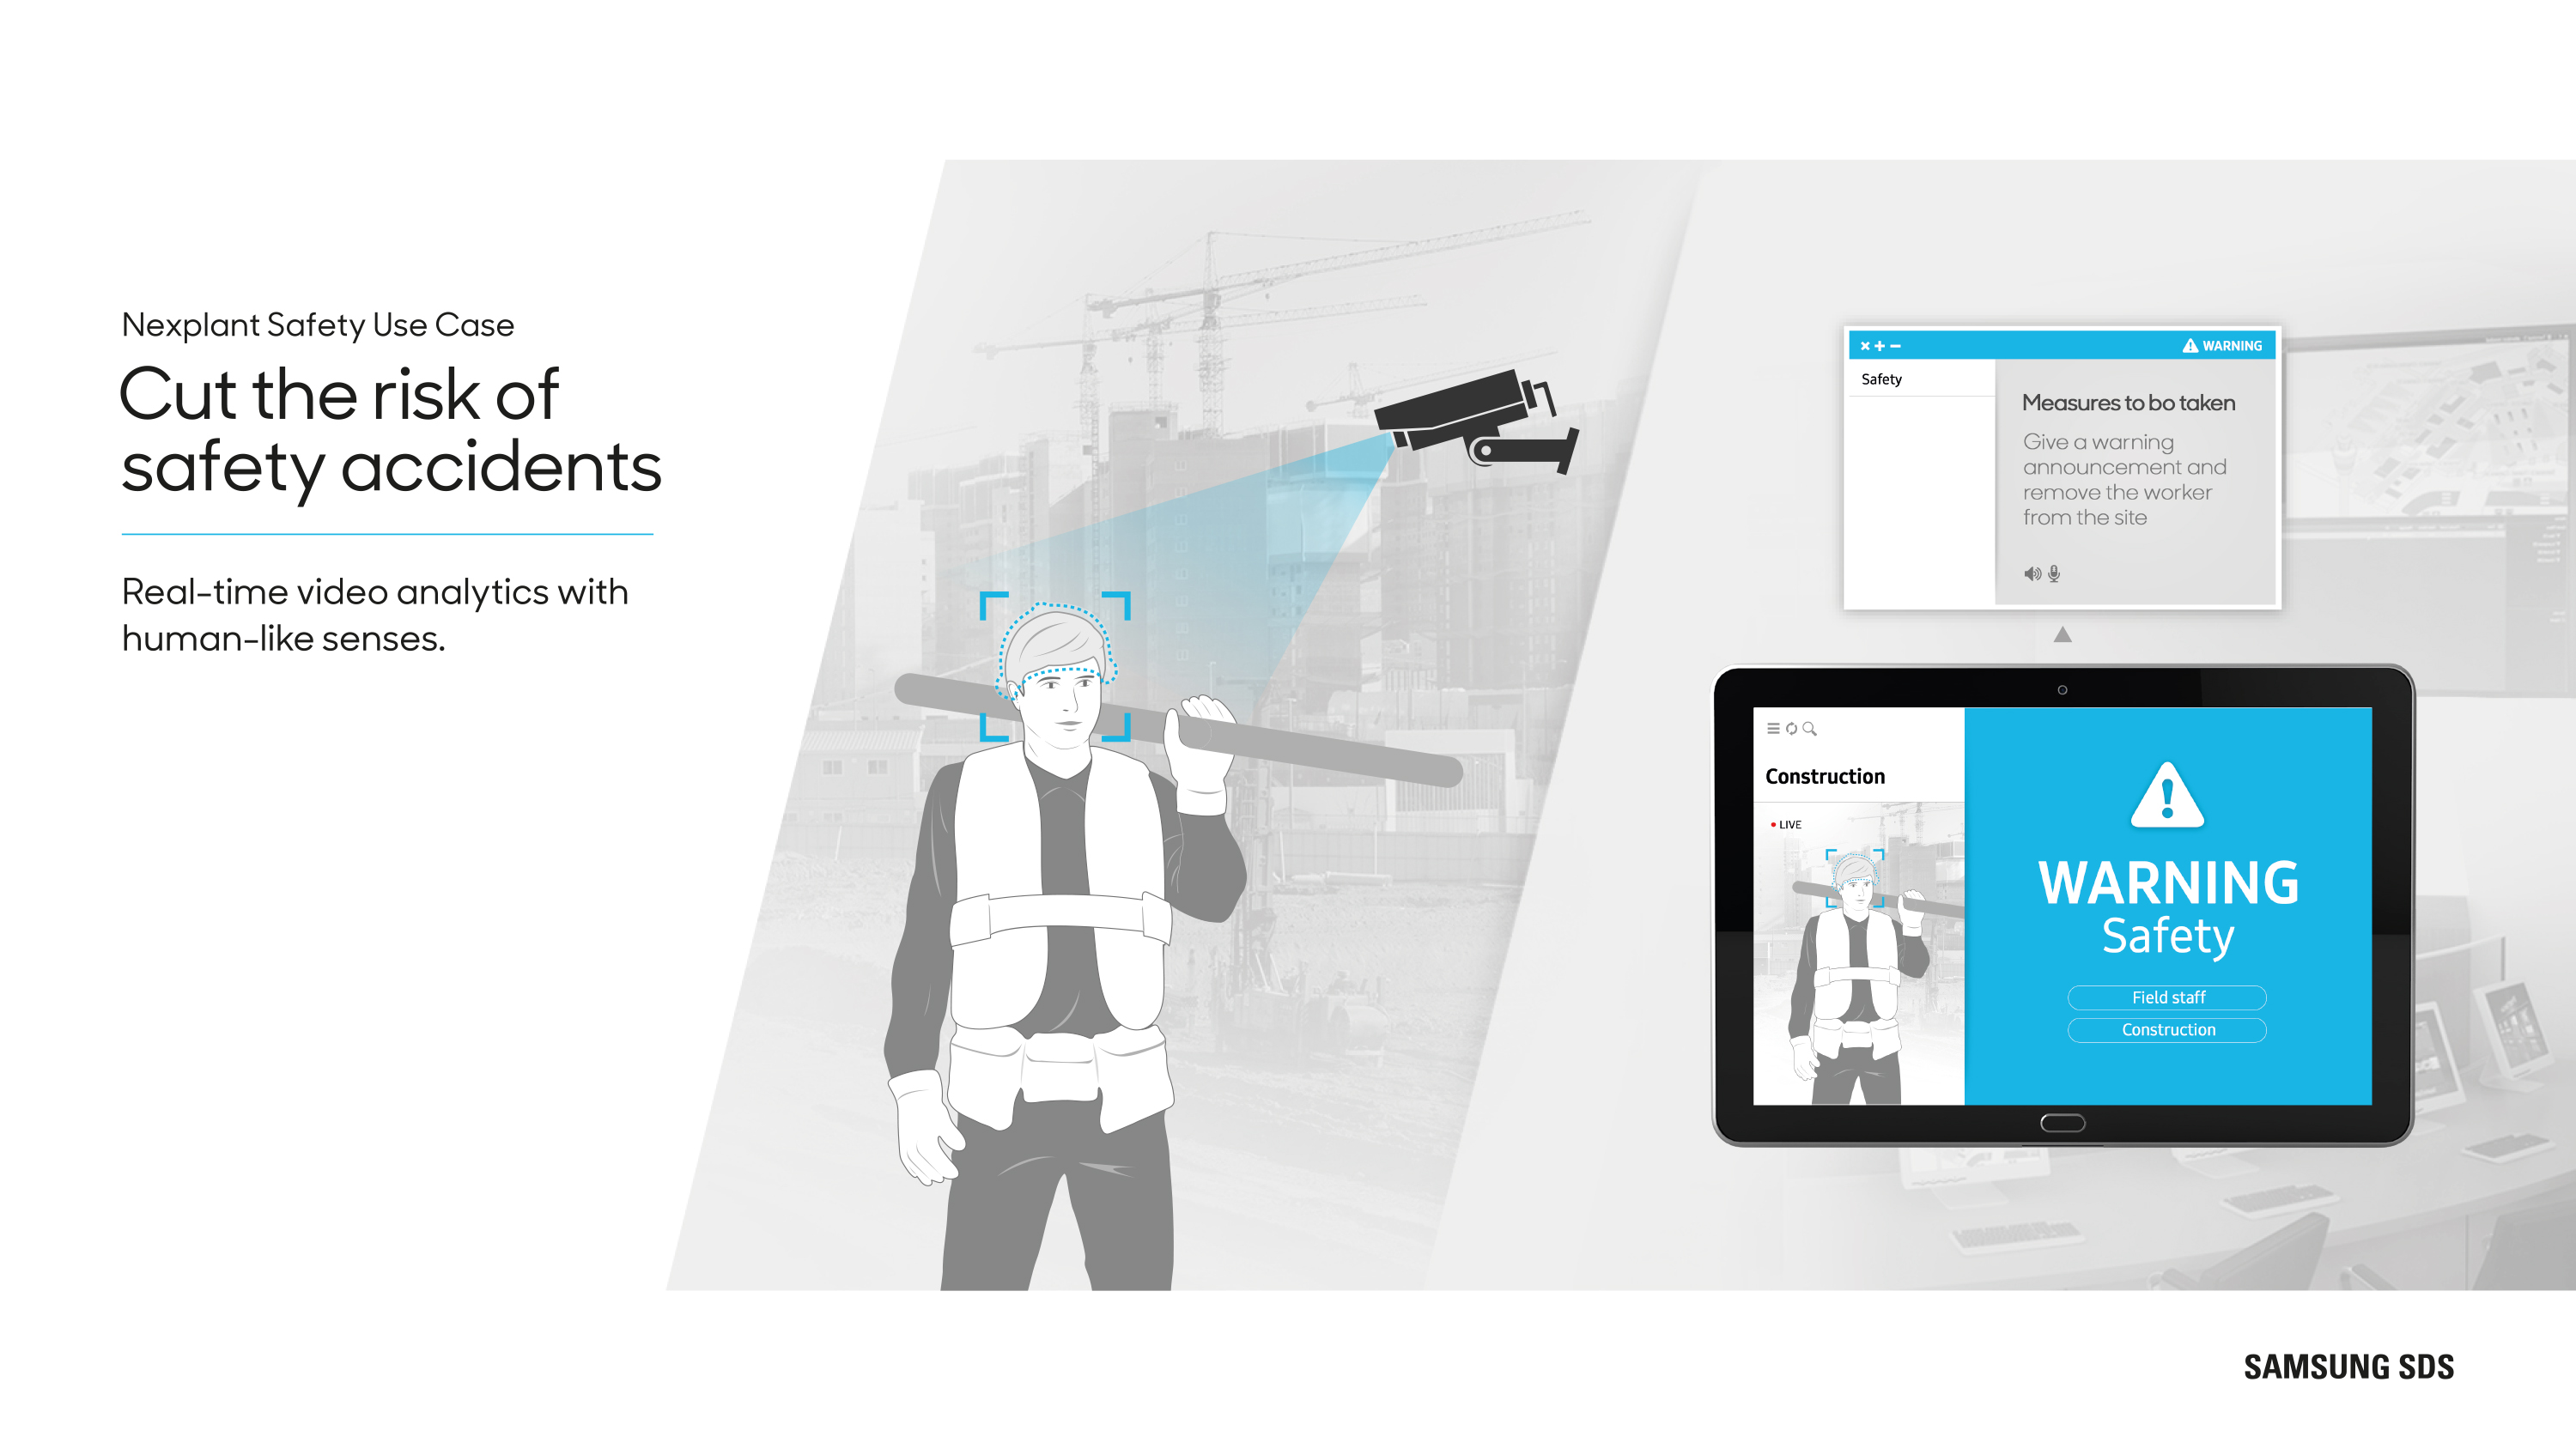 Cut the risk of safety accidents Real-time video analytics with human-like senses.